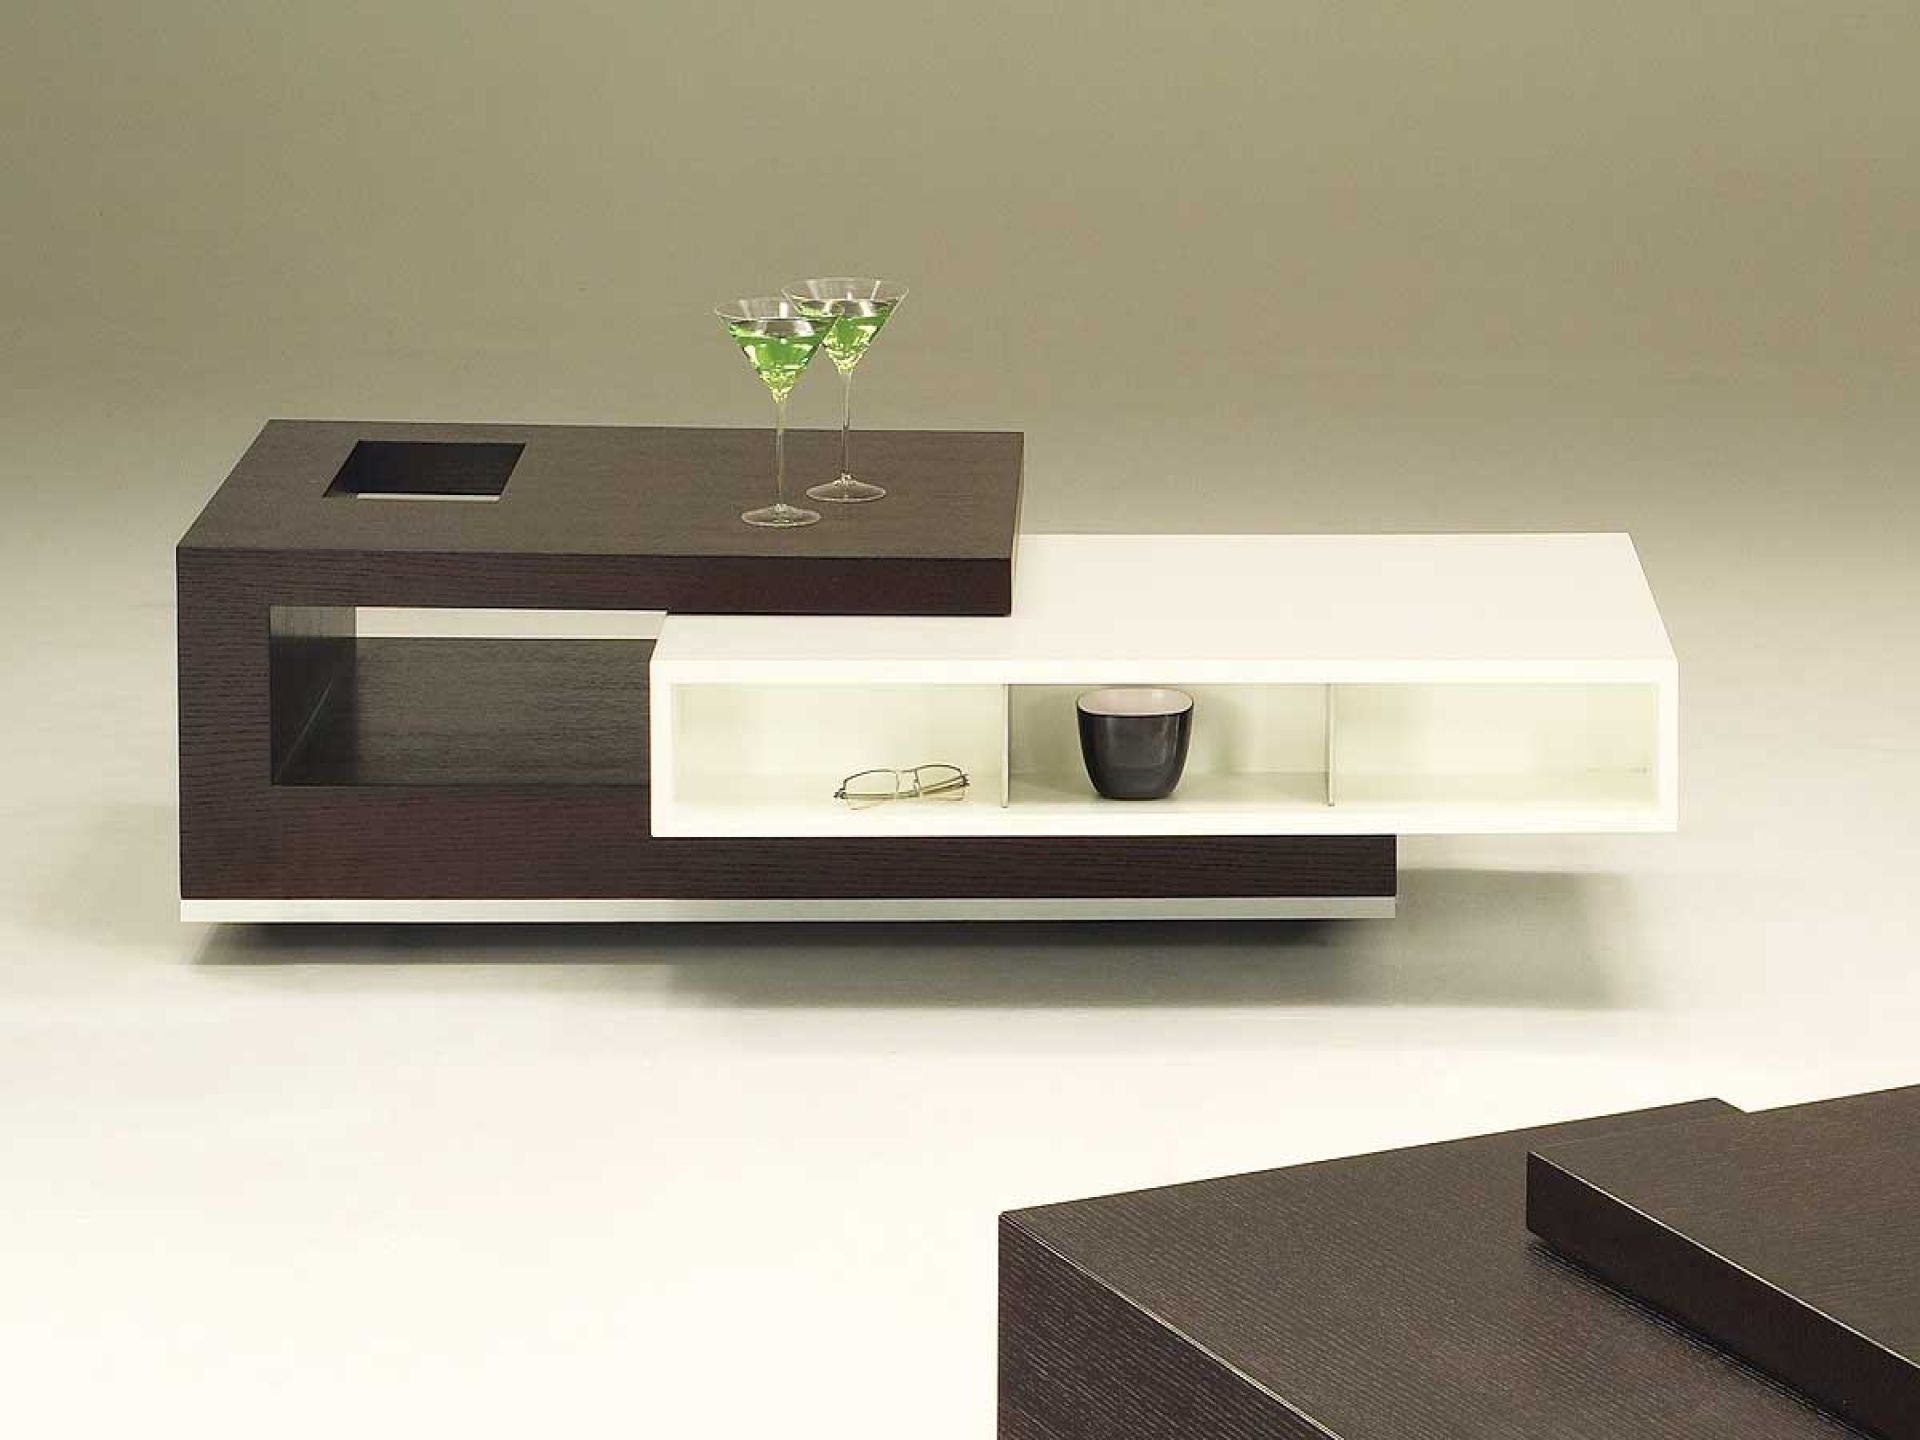 Beautiful Contemporary Design Coffee Tables Coffee Table Design Contemporary Coffee Table Design Coffee Table Design Modern [ 1440 x 1920 Pixel ]